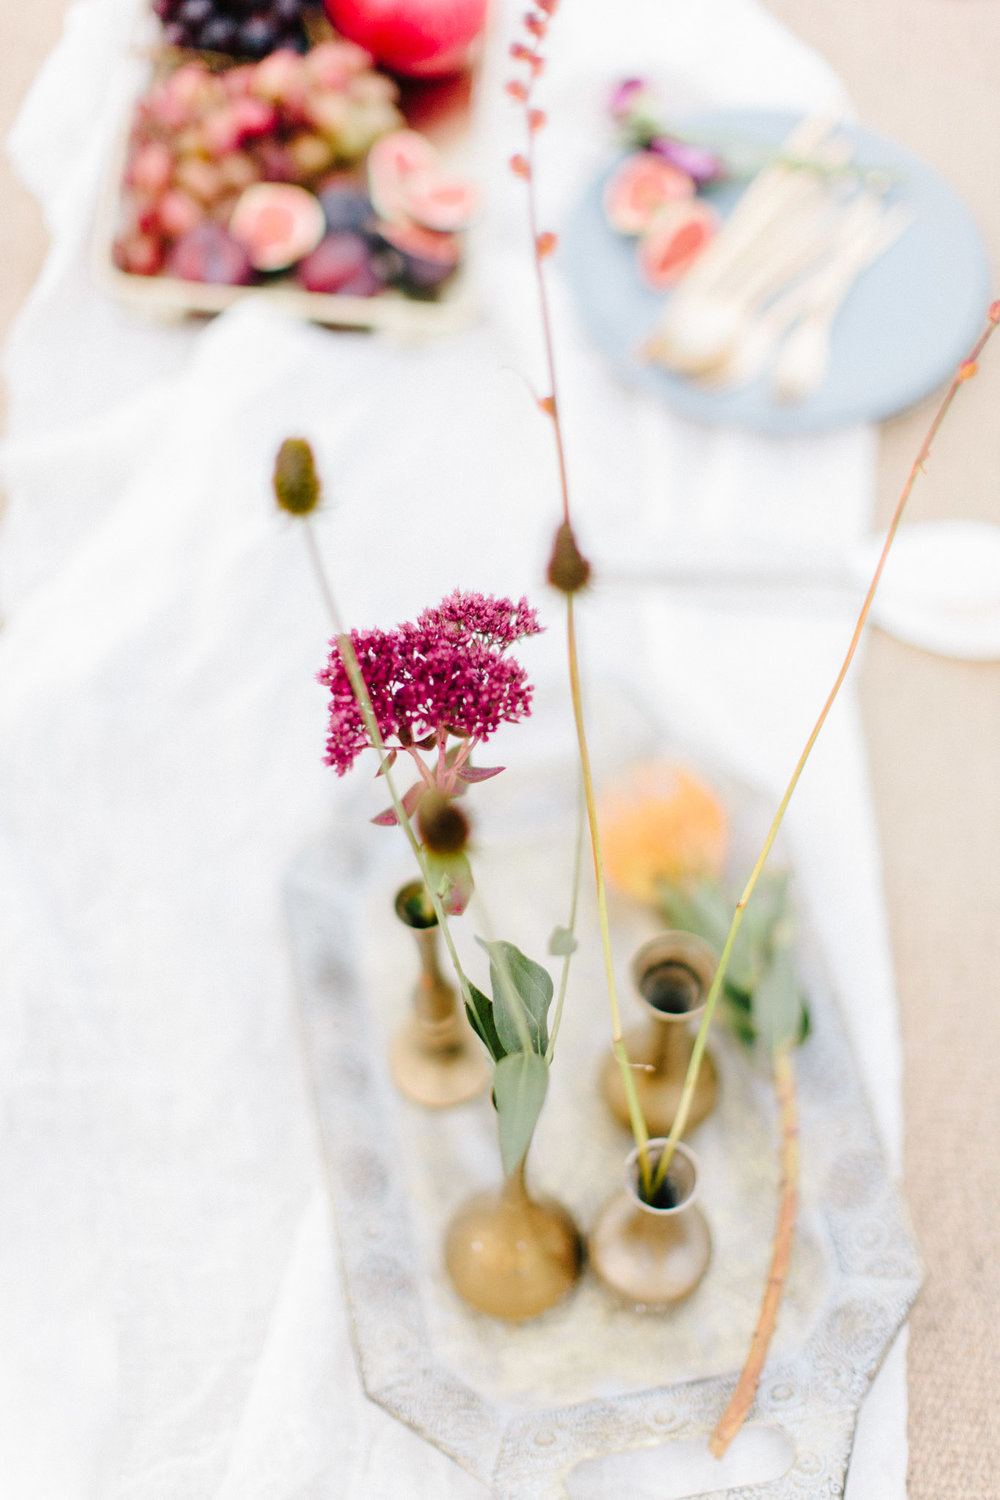 Speyer-Moroccan-Wedding-Inspiration-Pia-Anna-Christian-Wedding-Photography-S-42.jpg